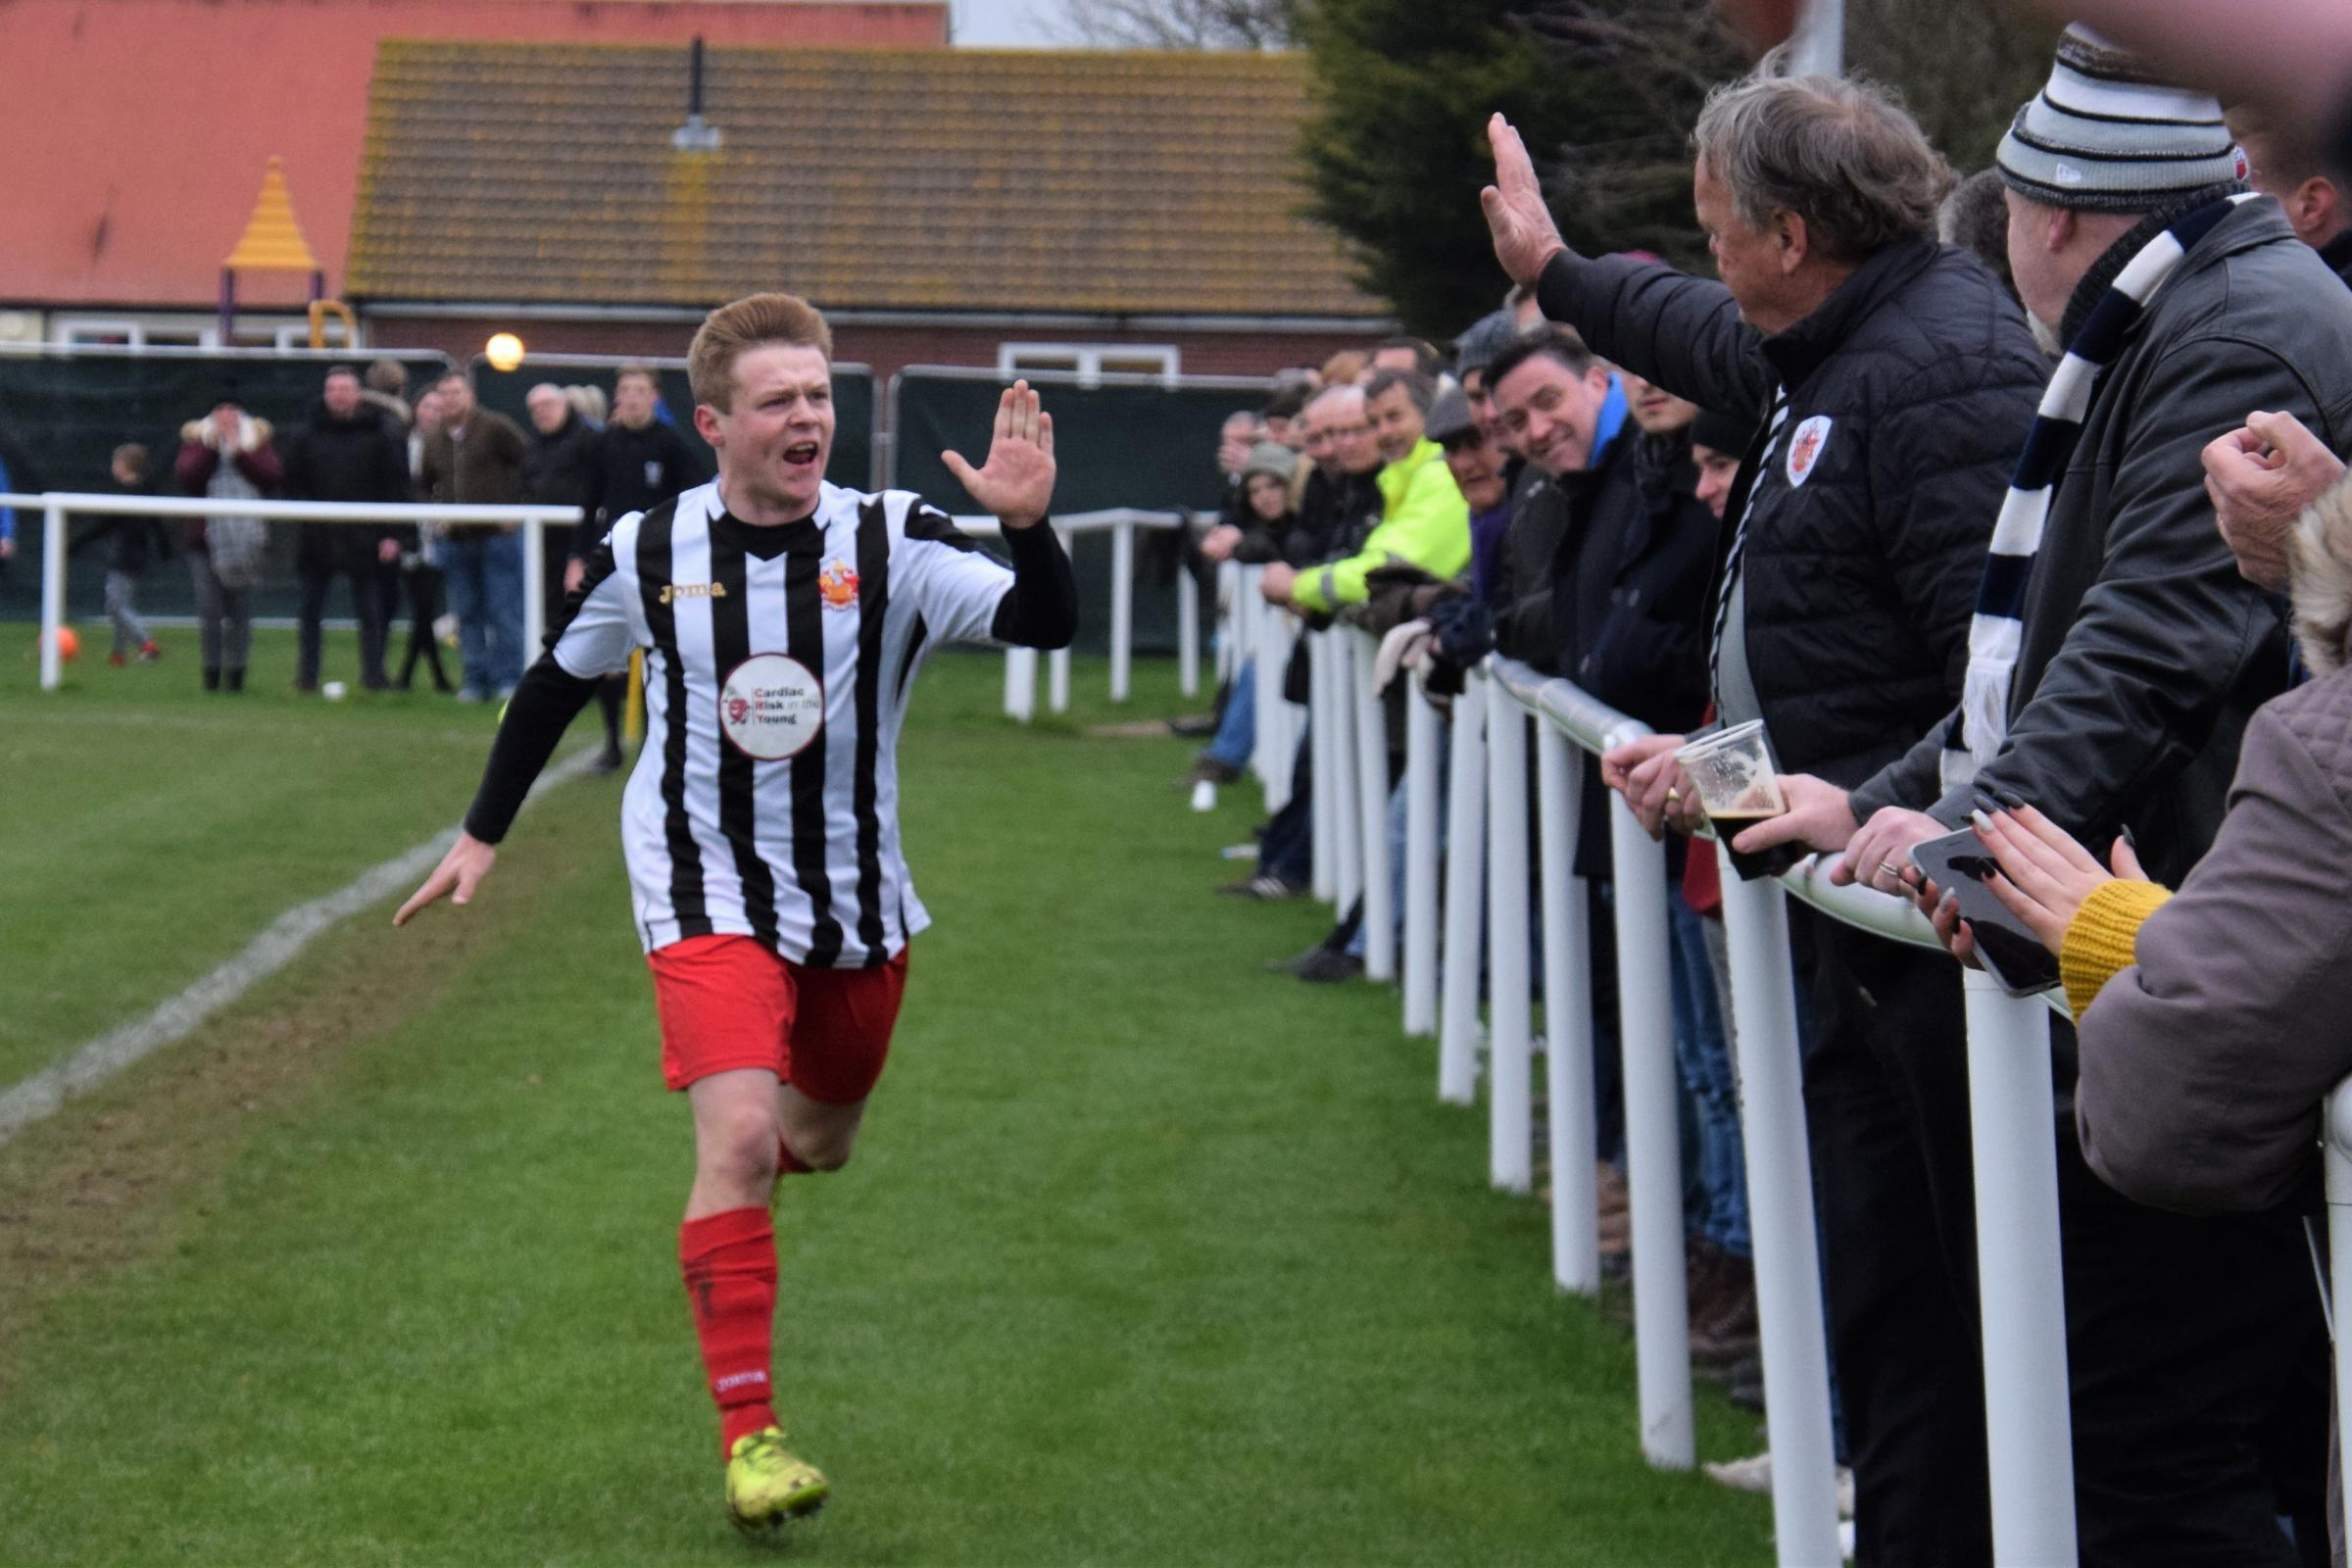 High fives: Harwich and Parkeston hero Tyler Rose is congratulated by Shrimpers chairman Tony Armstrong, after scoring in the Boxing Day derby at Little Oakley. Picture: Chris Smith